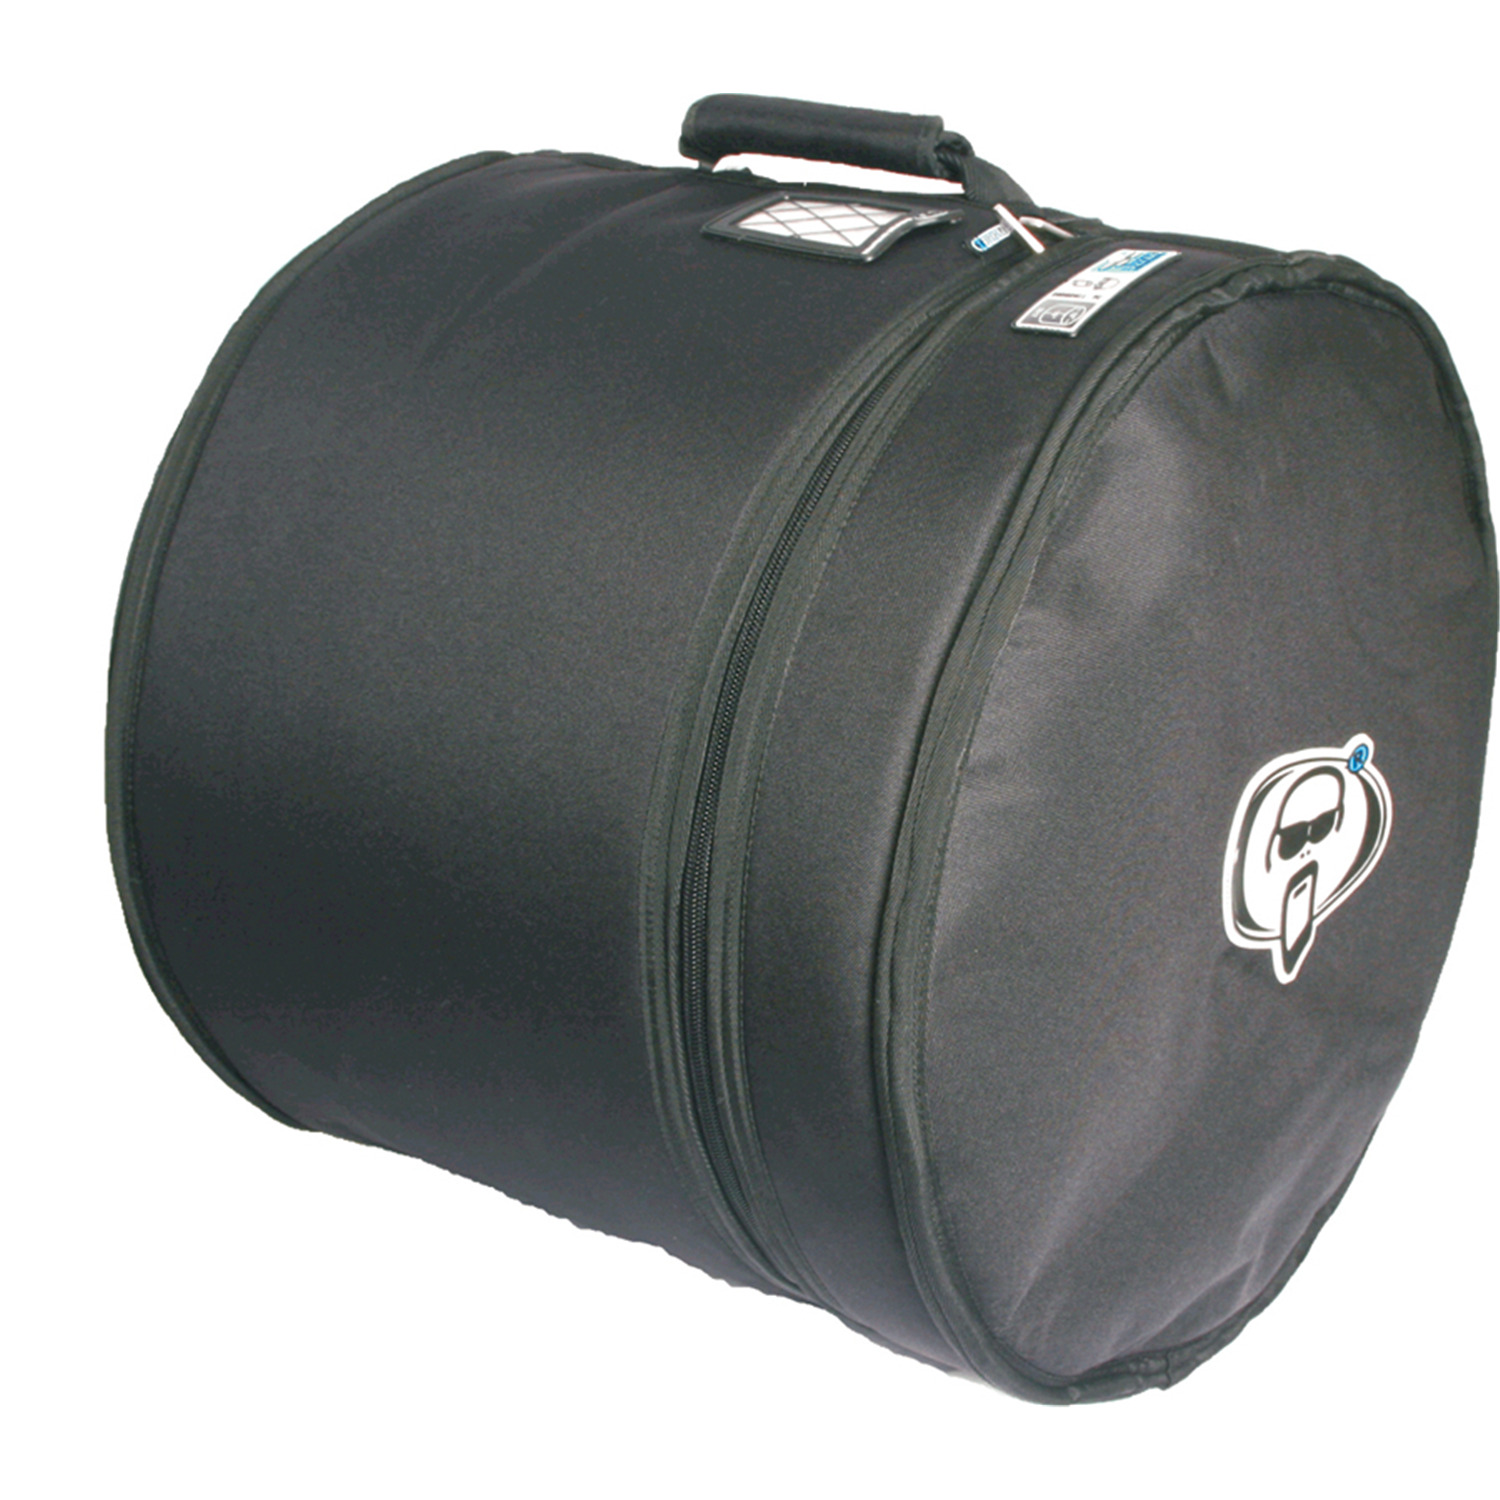 18 x 16 floor tom case ojcommerce